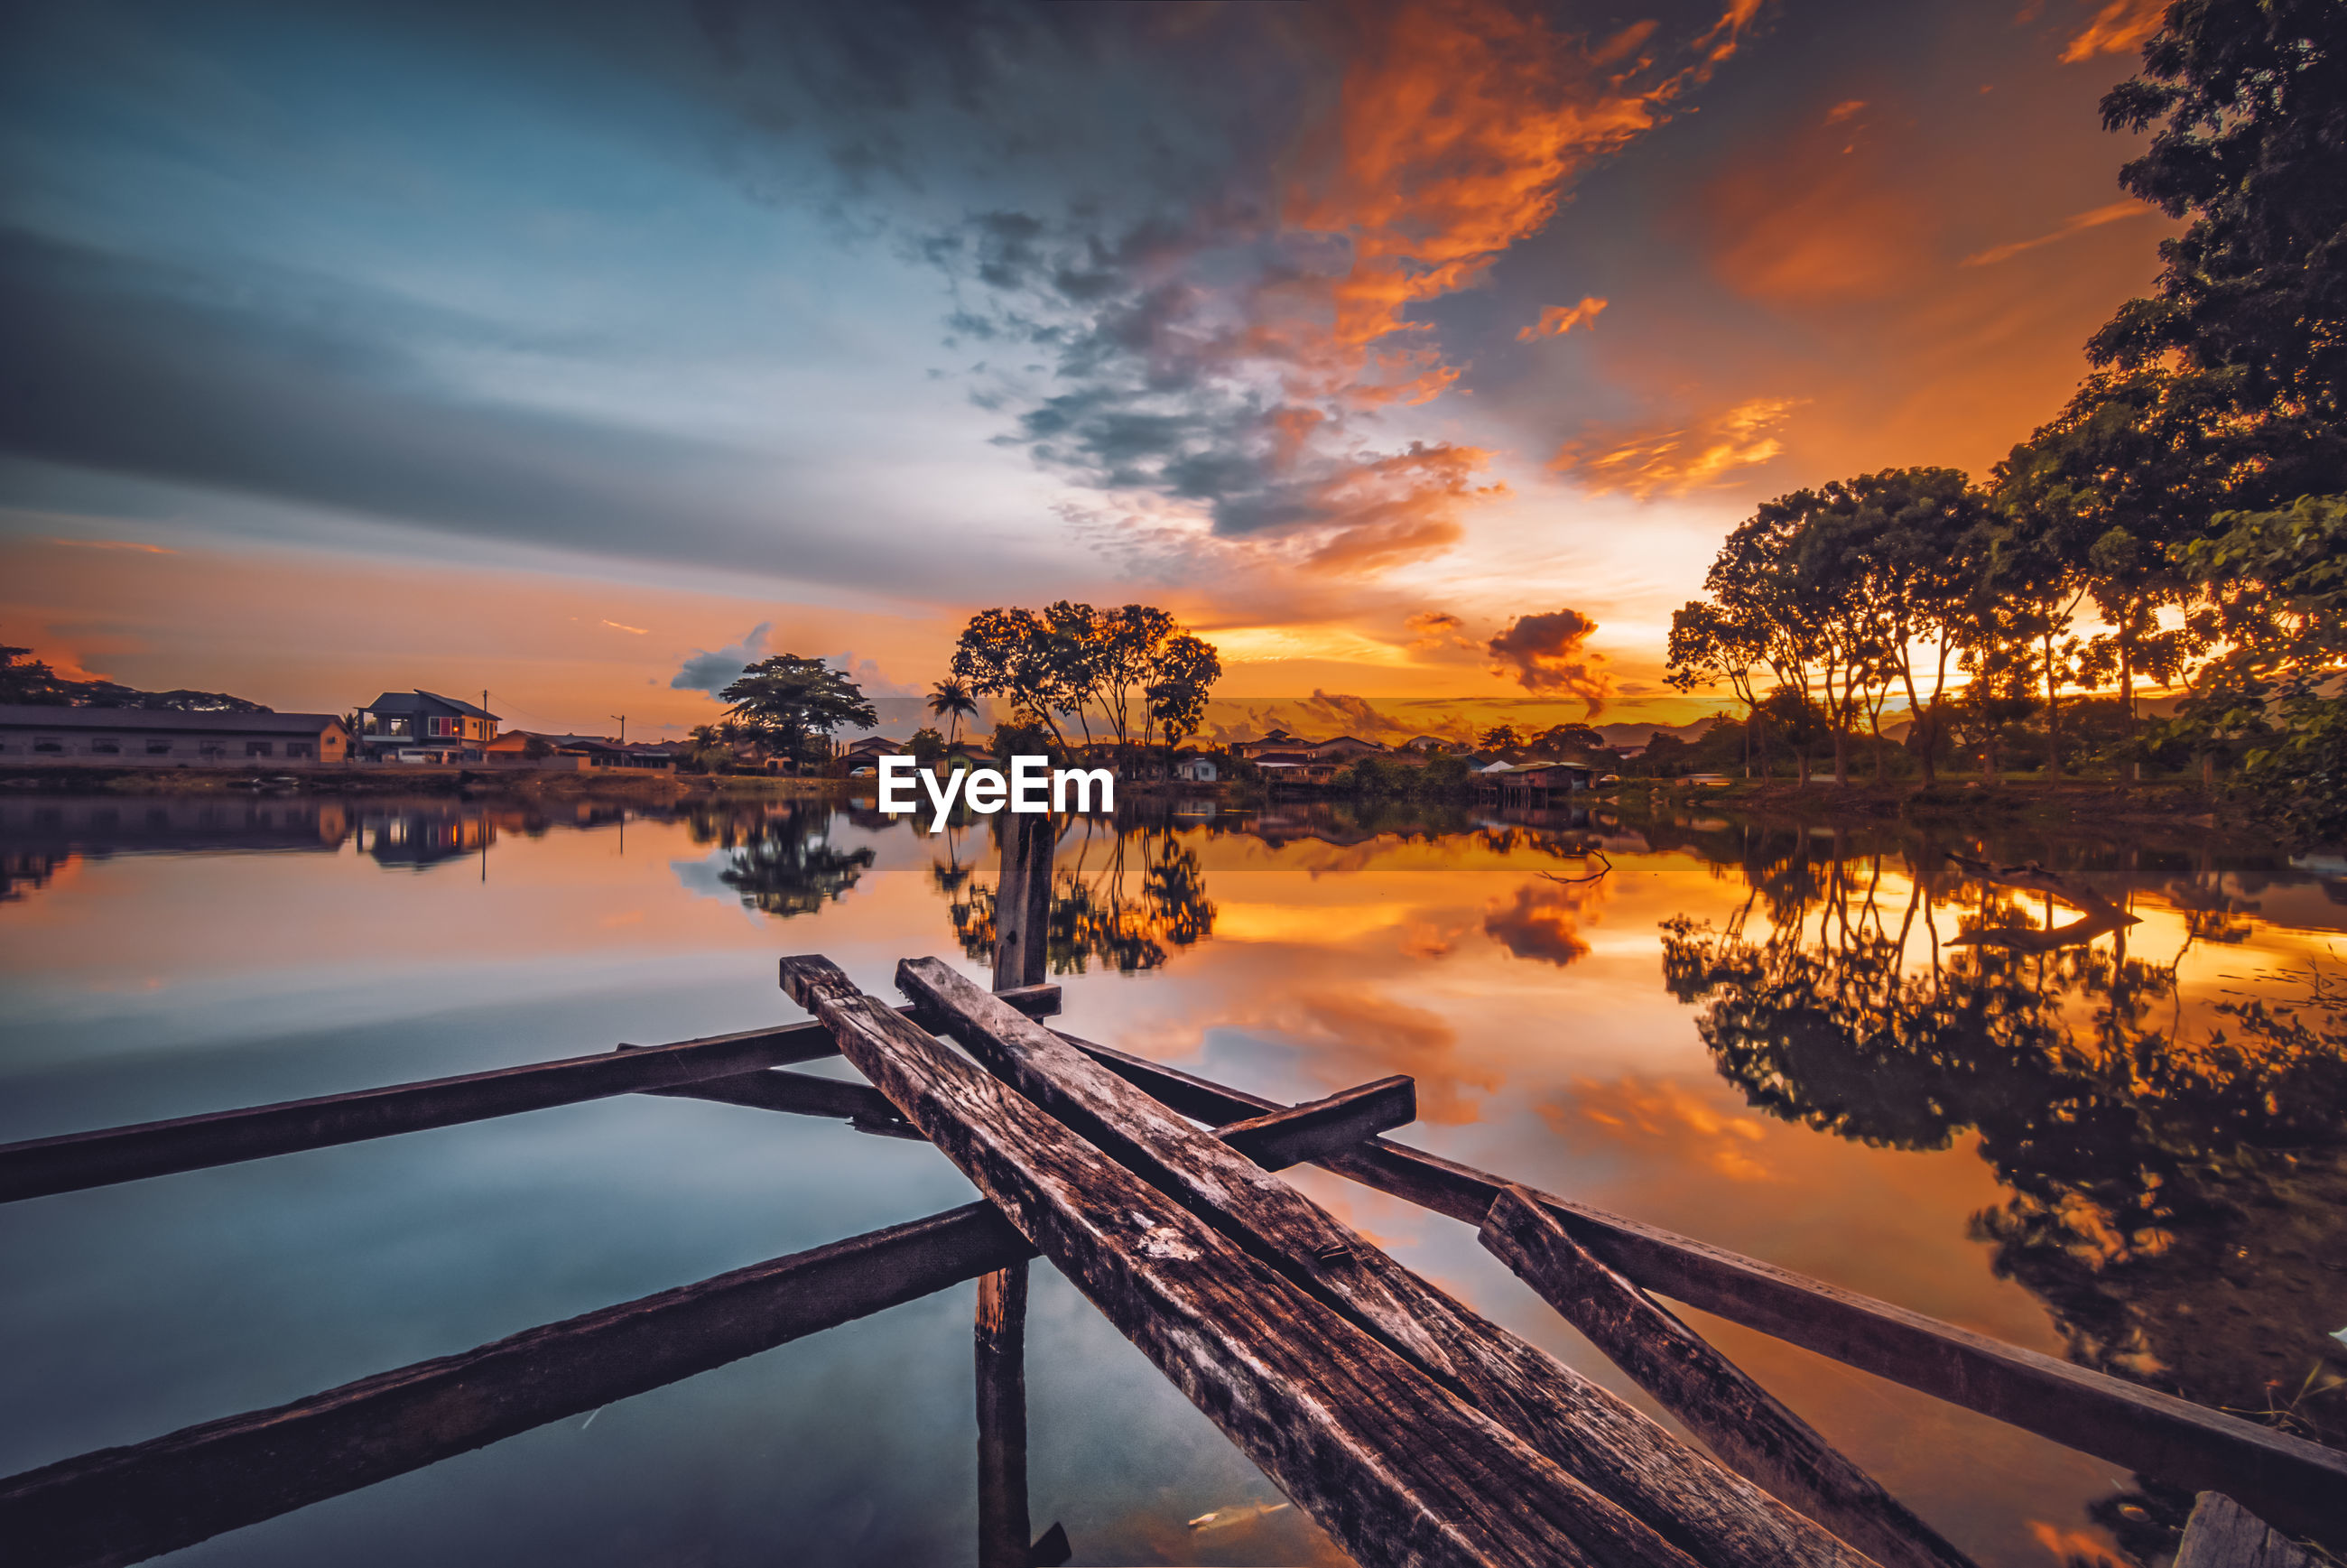 SCENIC VIEW OF REFLECTION OF TREES IN WATER DURING SUNSET